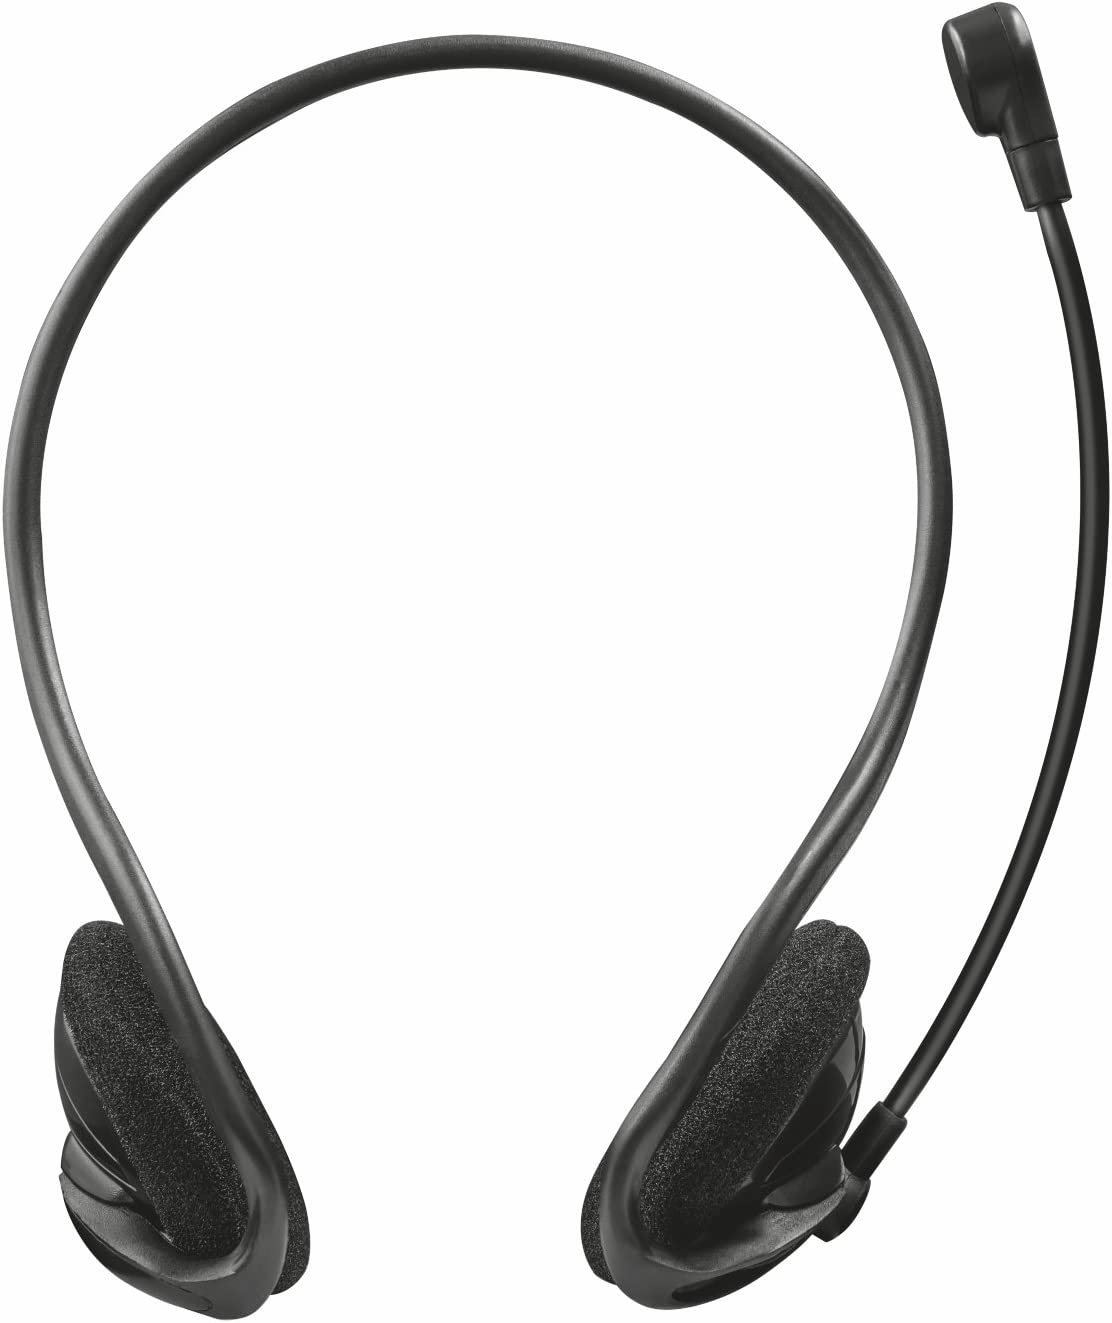 Trust Cinto Chat Headset for PC and Laptop Black